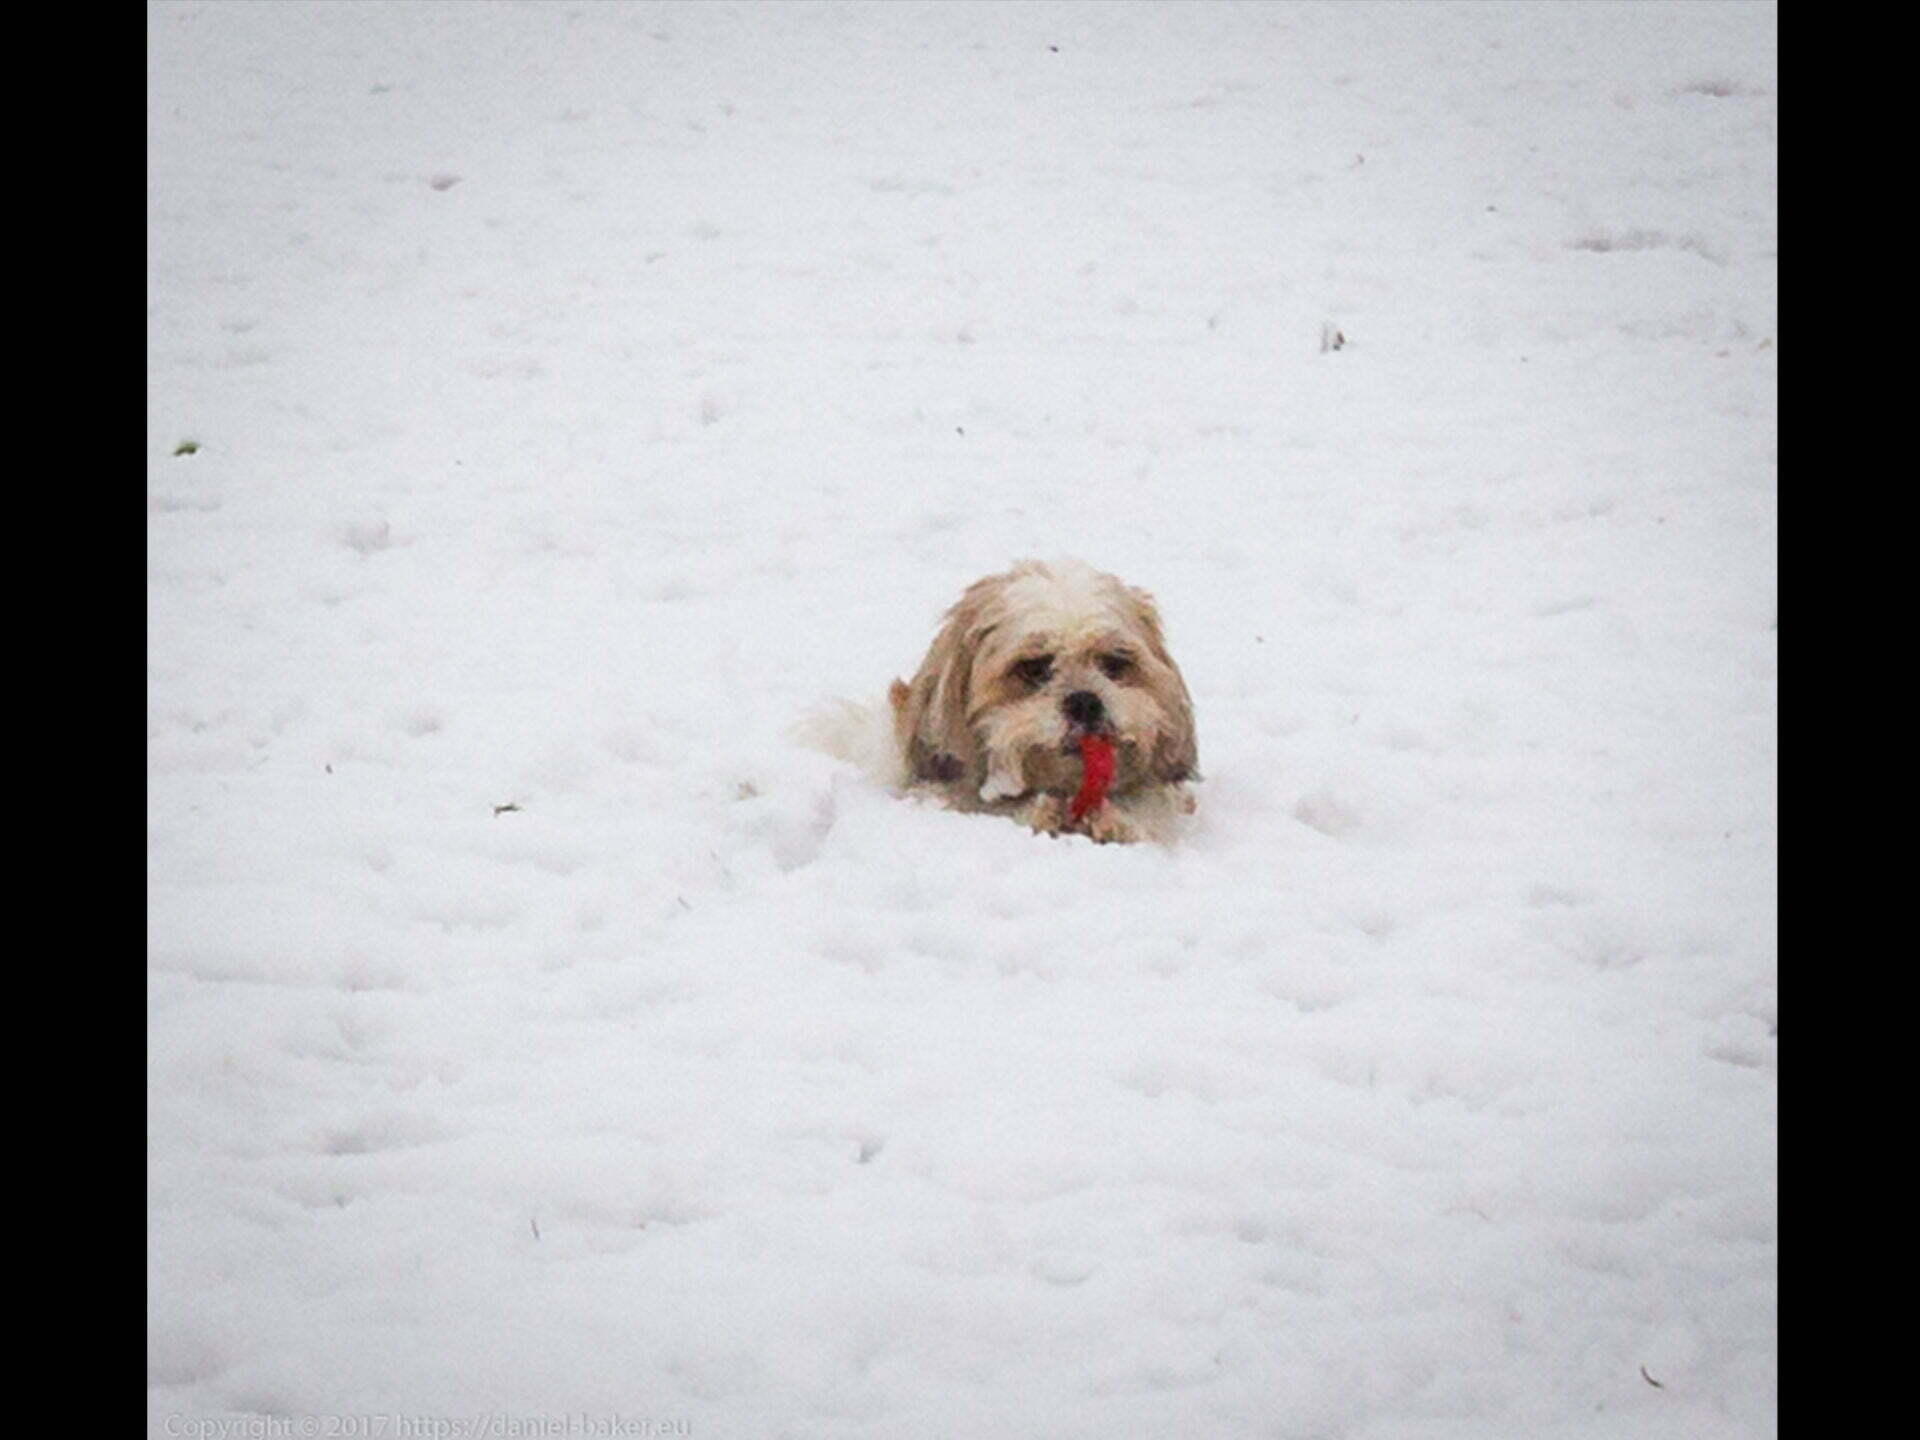 A dogs head visible in the snow